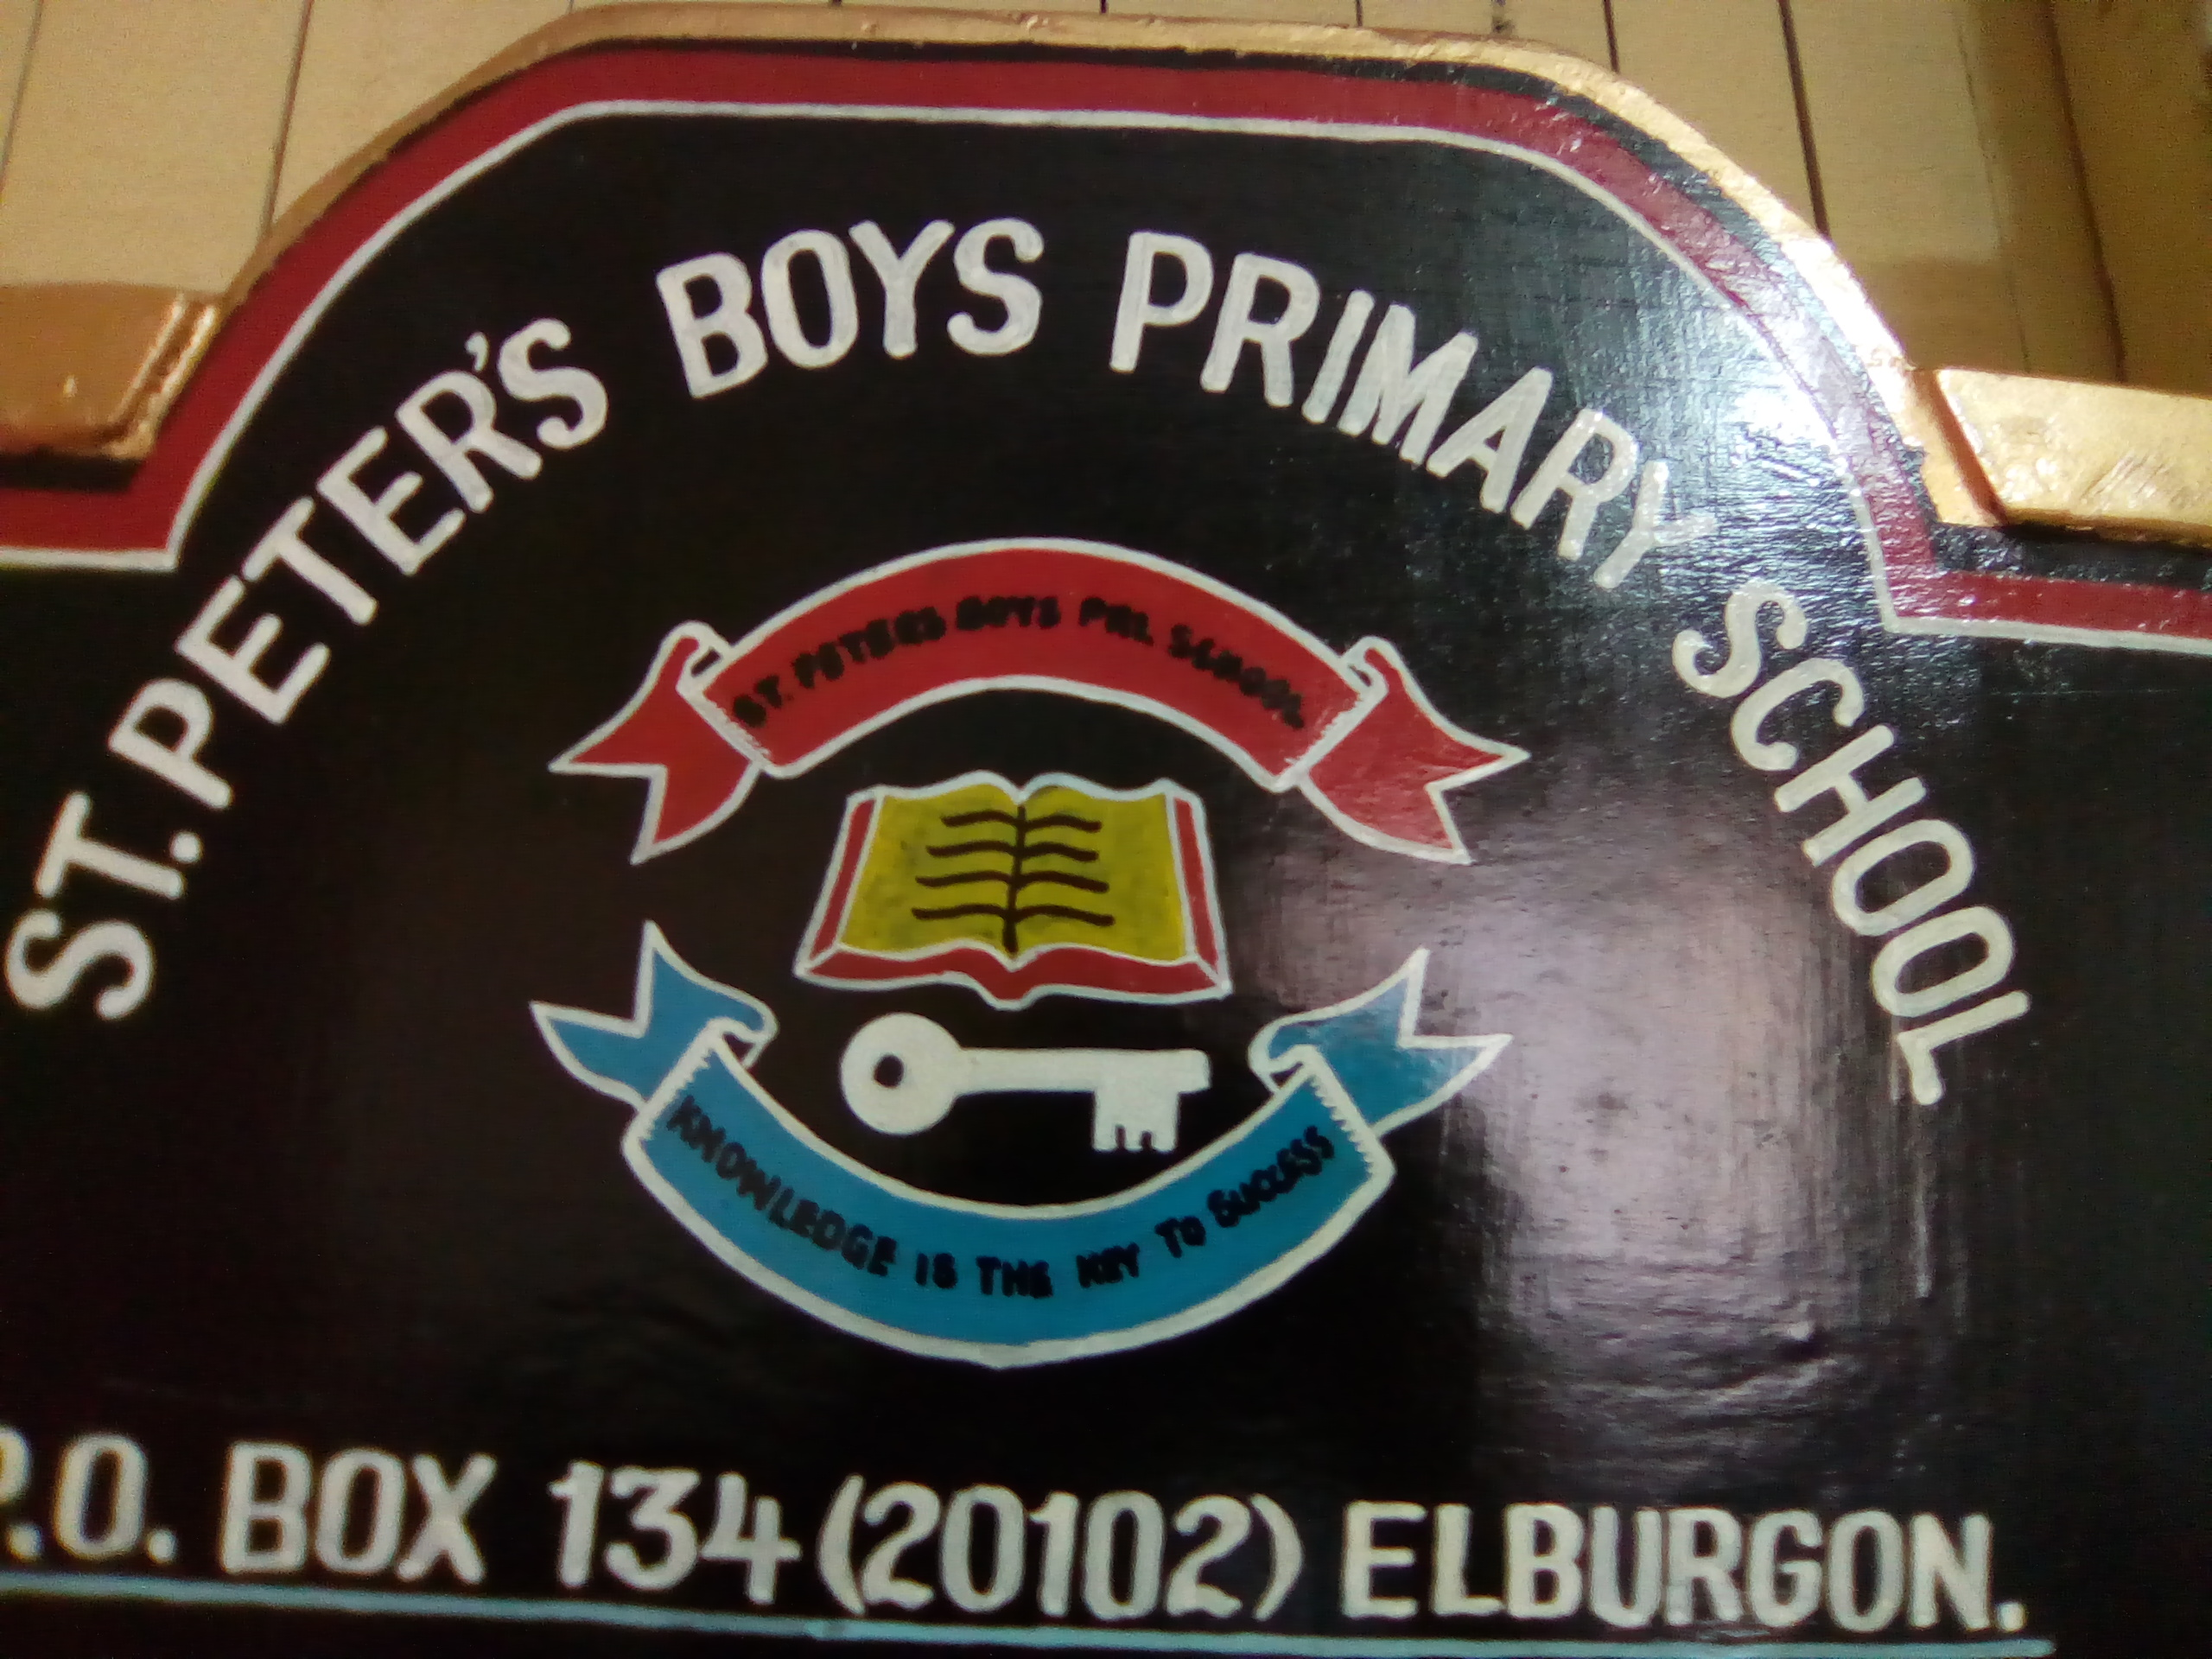 St Peters Boys Primary